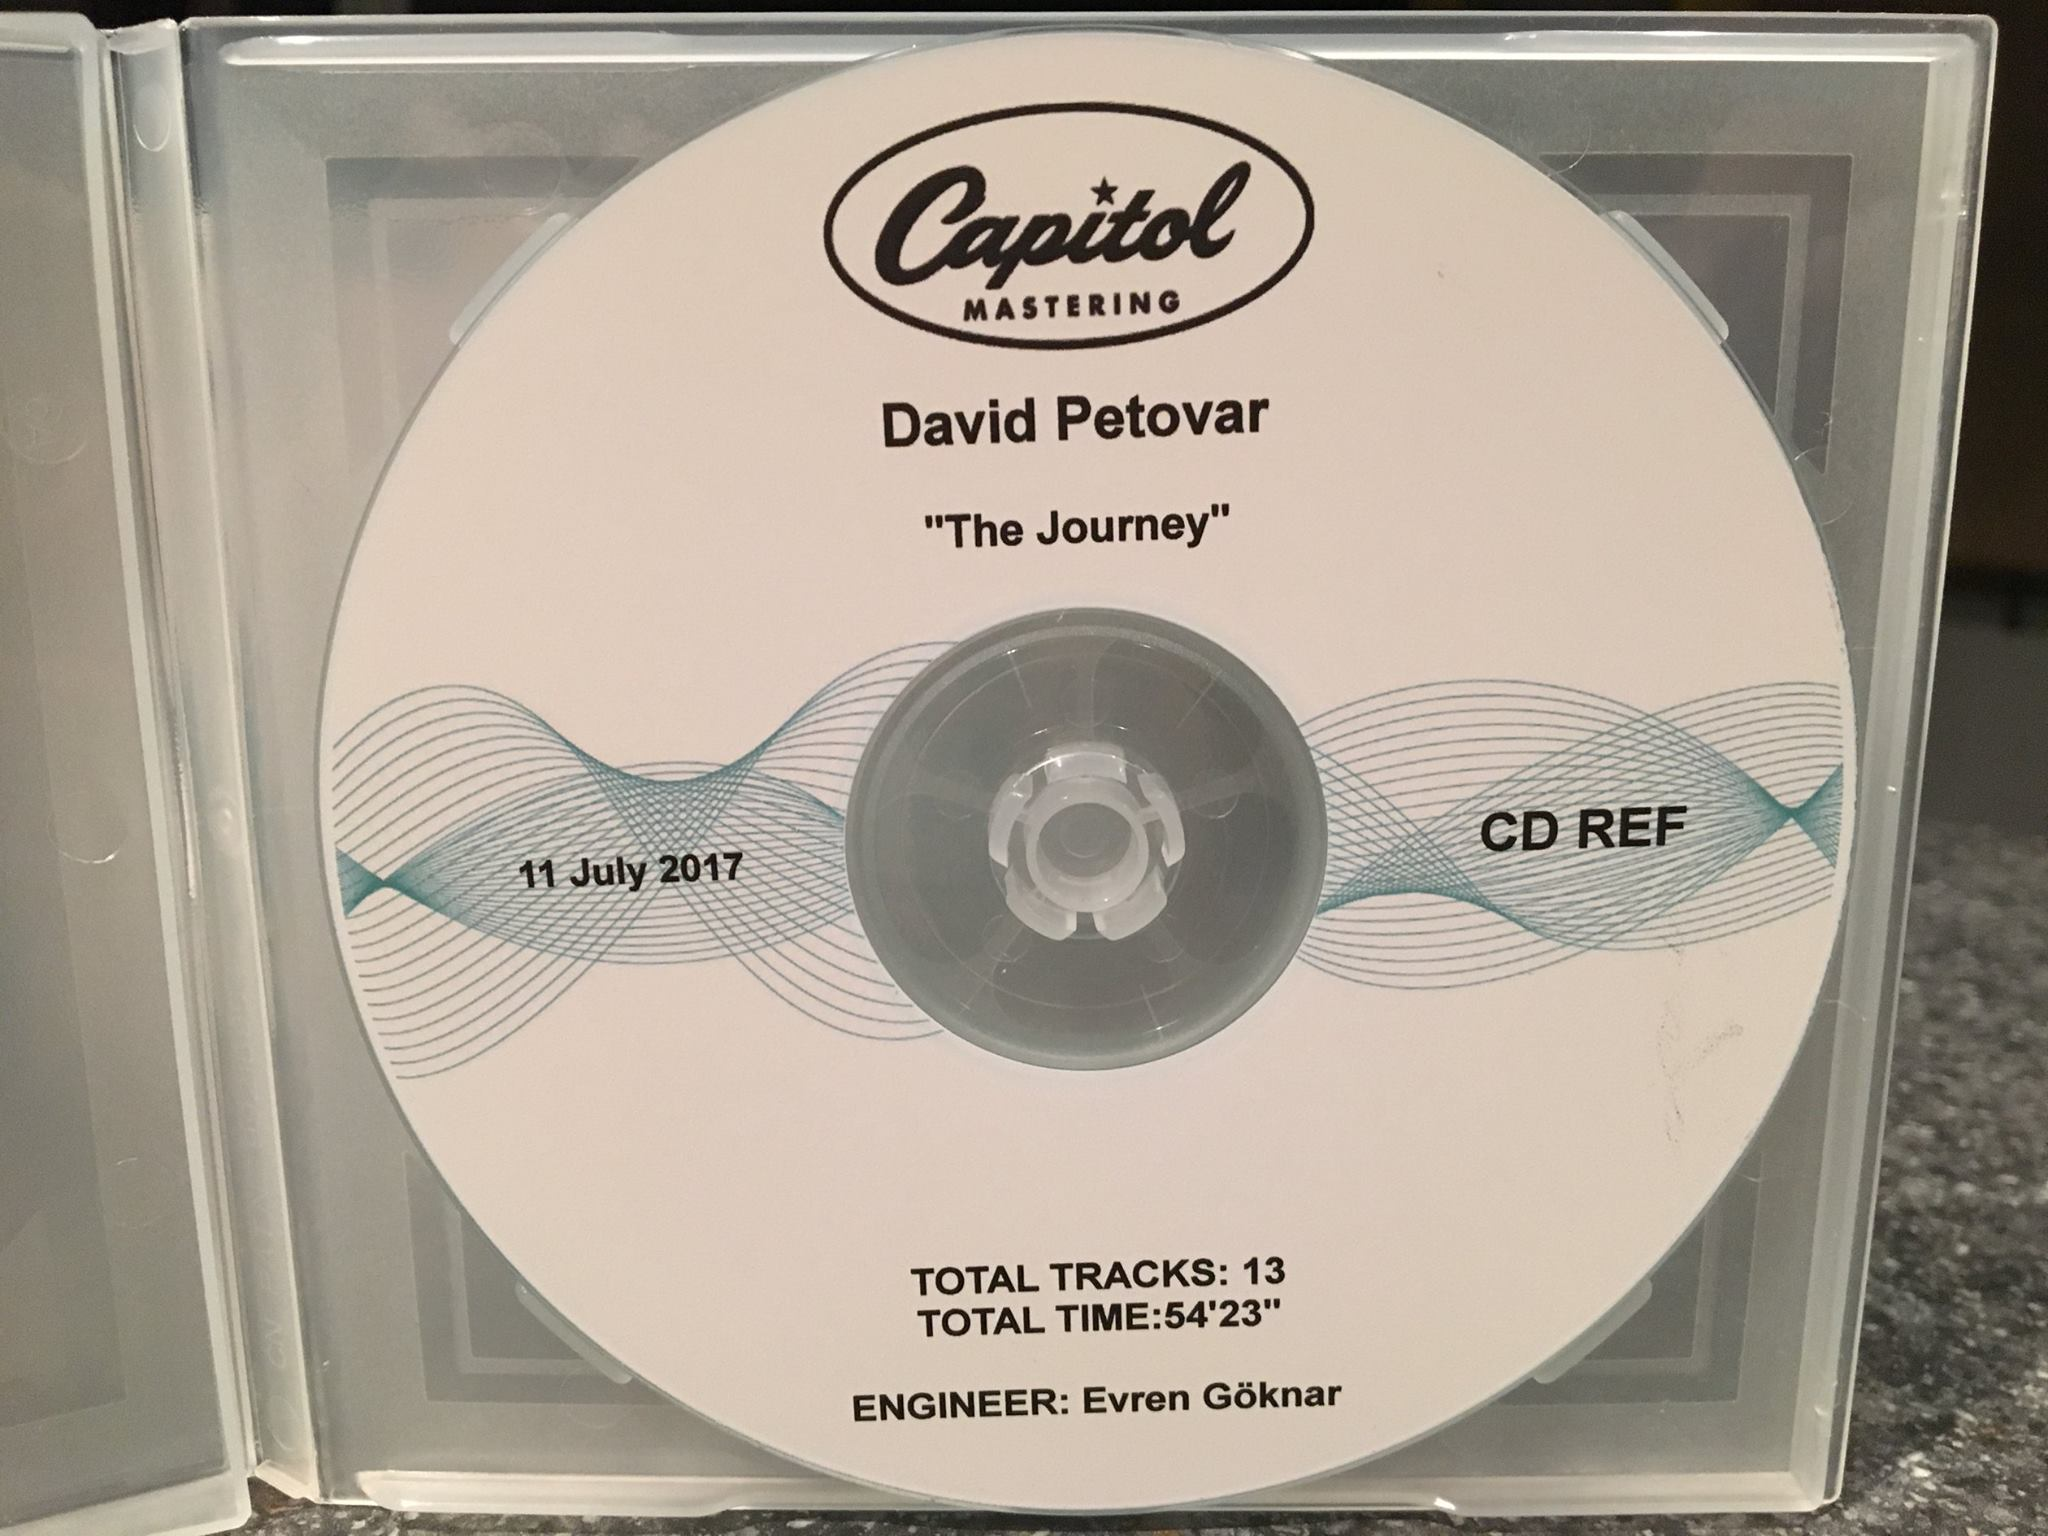 The songs range from soft rock , folk rock , country rock, alt rock, pop rock to hard rock. It's Folk without the flowers, Country without the horse, Rock without the screaming.  -DJP  That's one full CD!  -SK